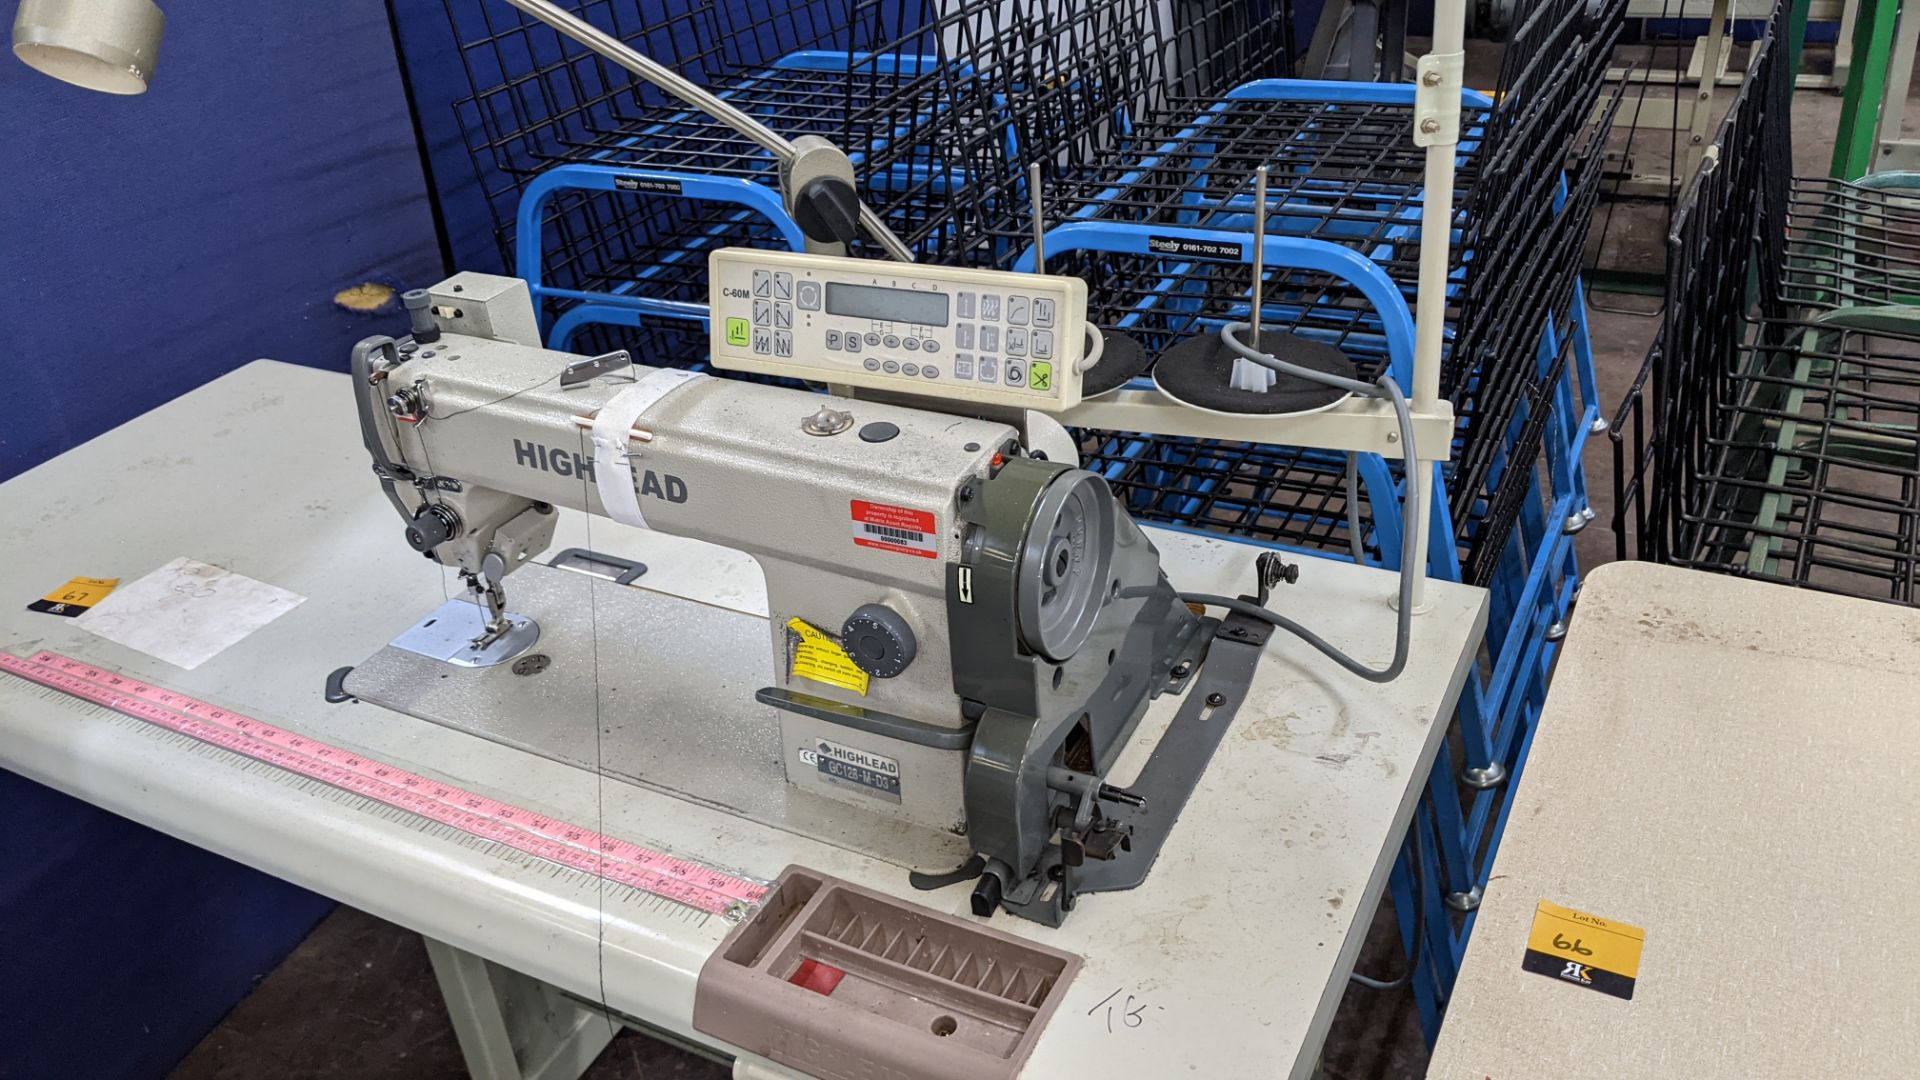 Highlead model GC128-M-D3 sewing machine with model C-60M digital controller - Image 4 of 18